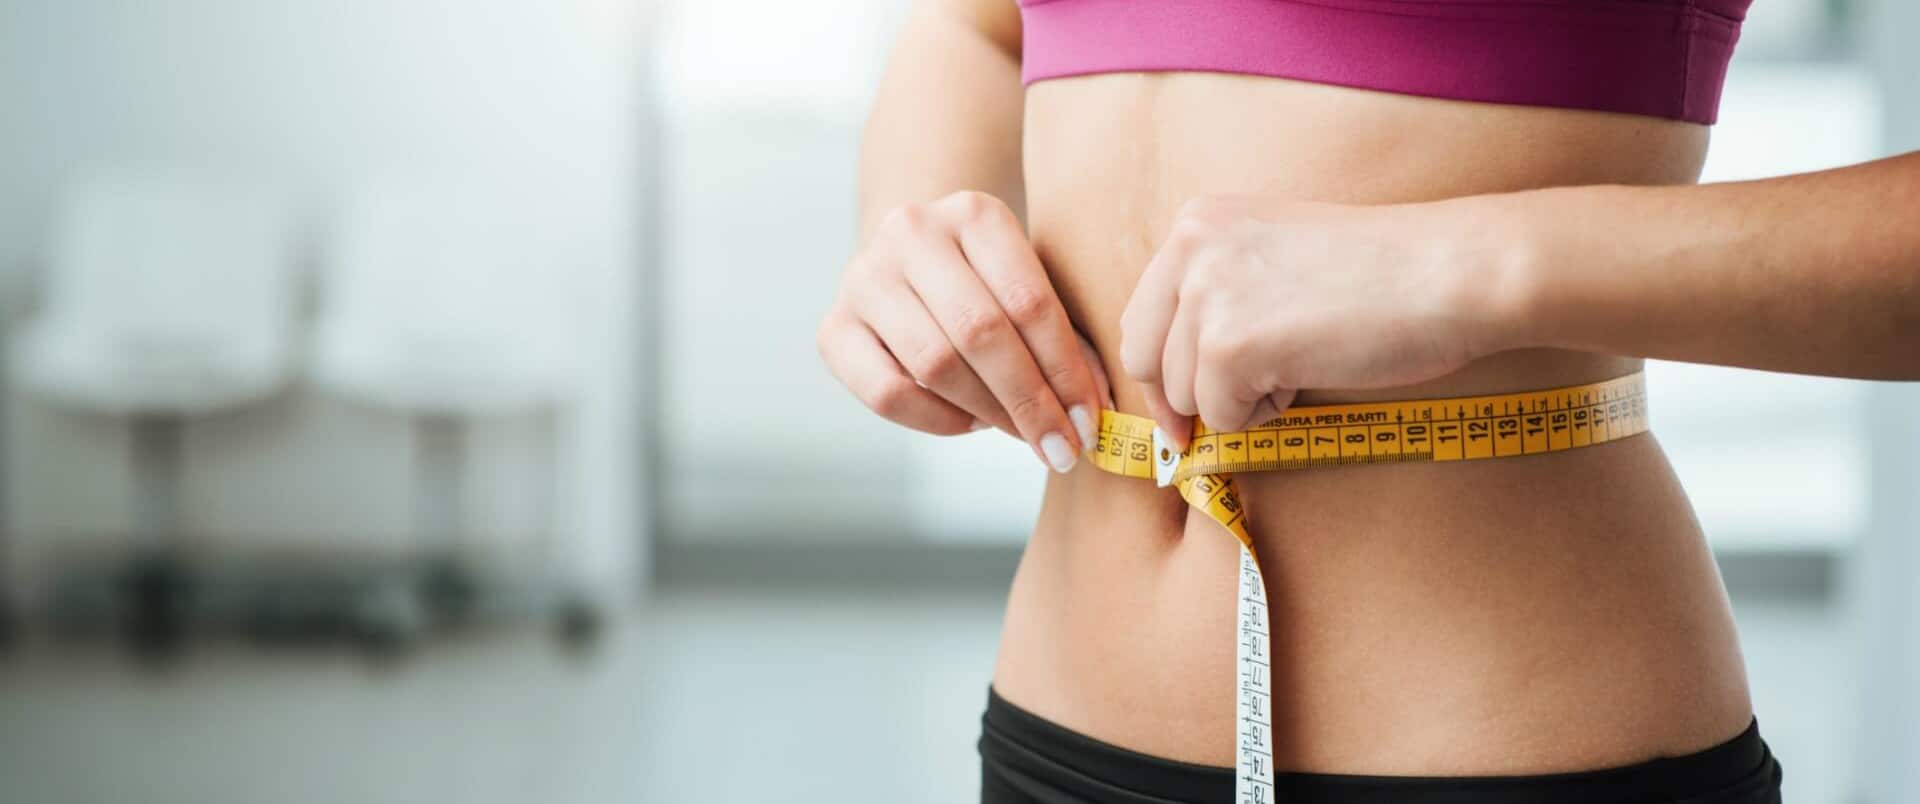 HCG Weight Loss In Columbia SC